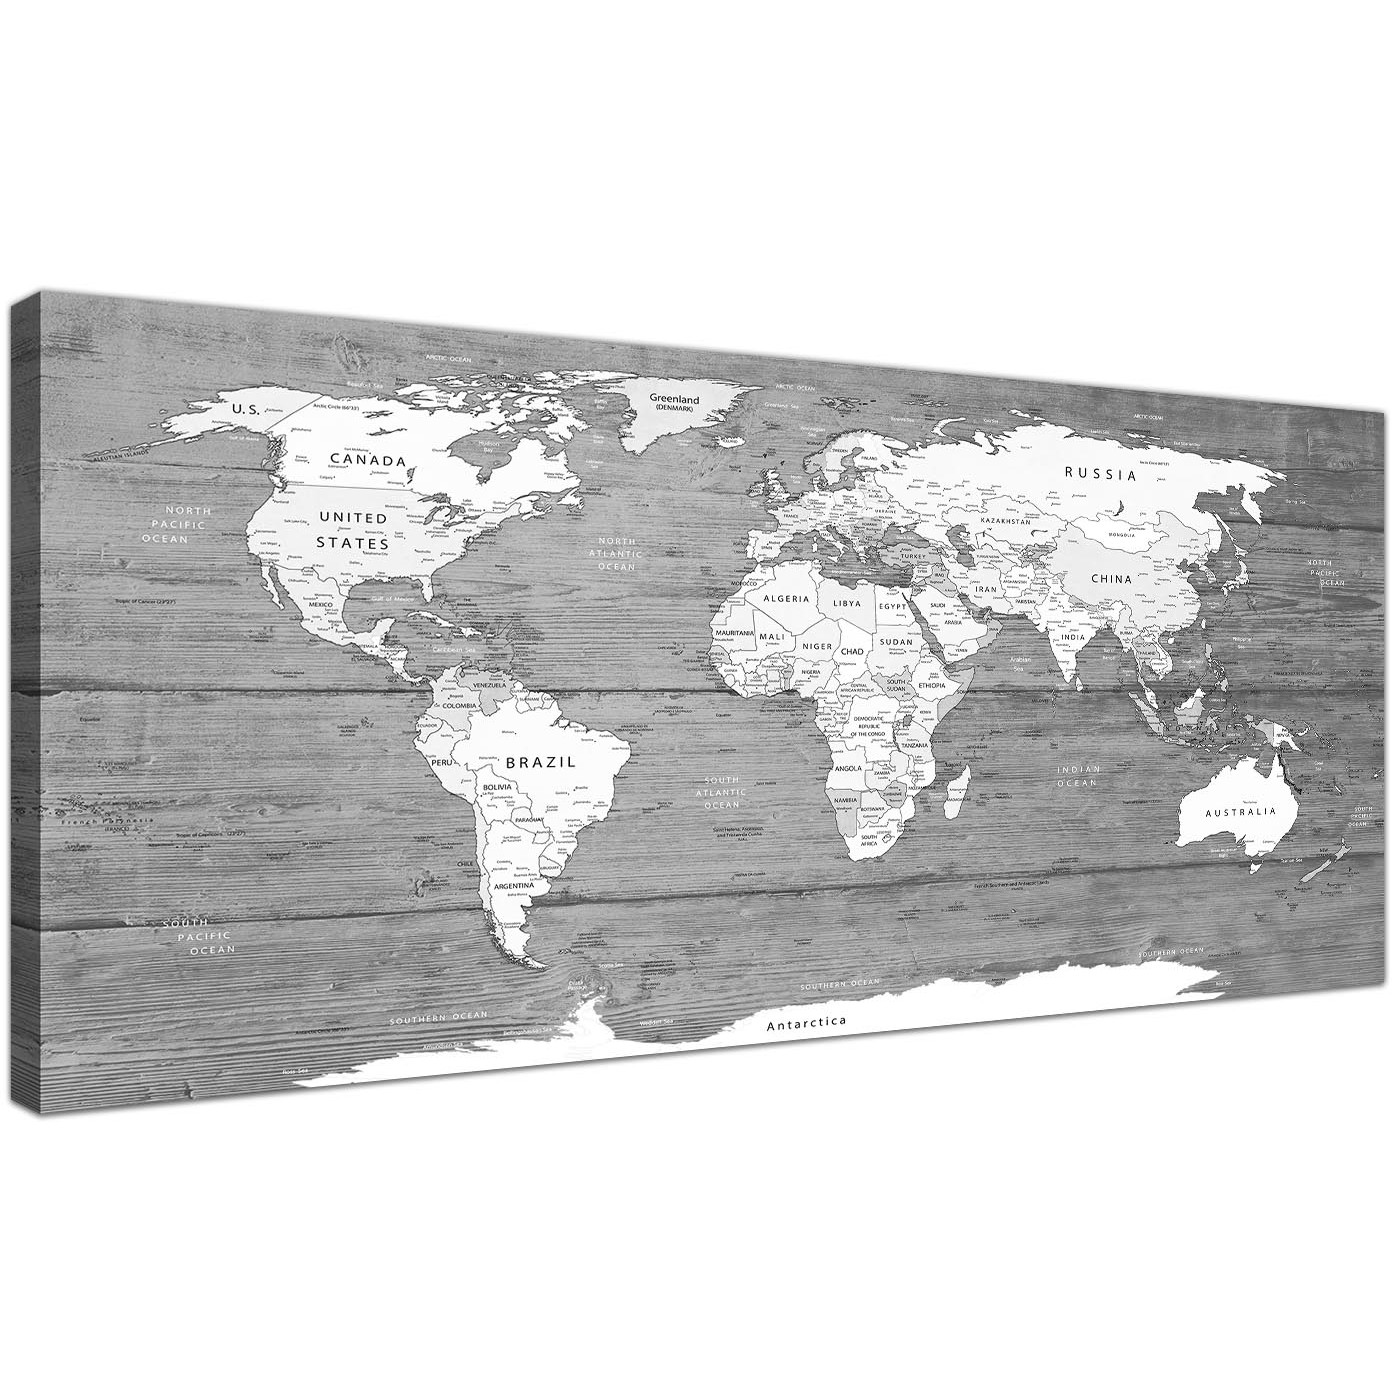 Large black white map of world atlas canvas wall art print oversized large black white map of world atlas canvas wall art printmodern 120cm wide 1315 for display gallery item 1 freerunsca Image collections